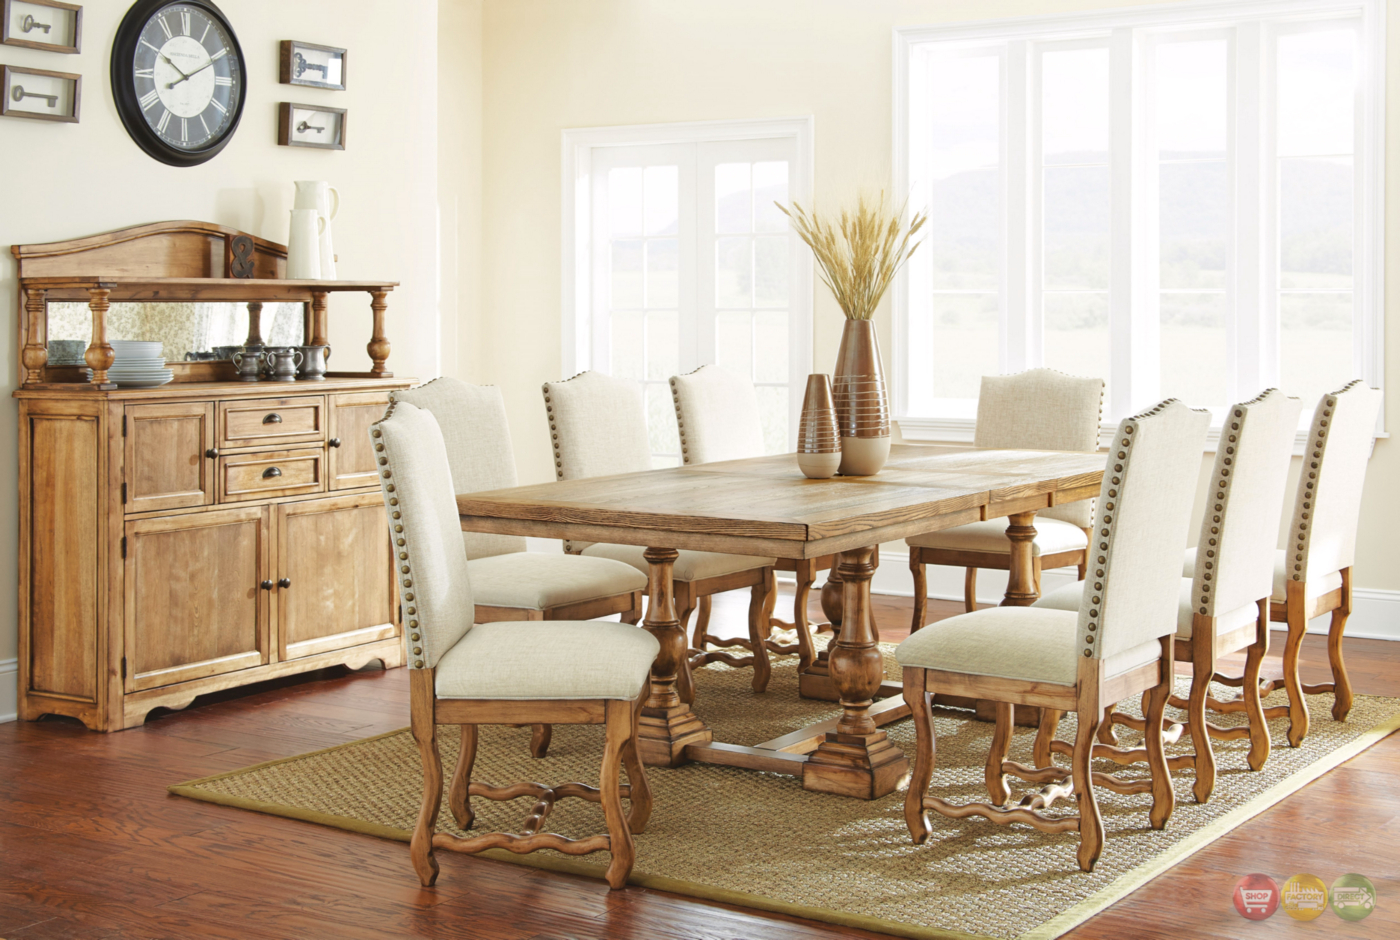 Plymouth rustic elm trestle dining table in burnished oak for House to home plymouth furniture